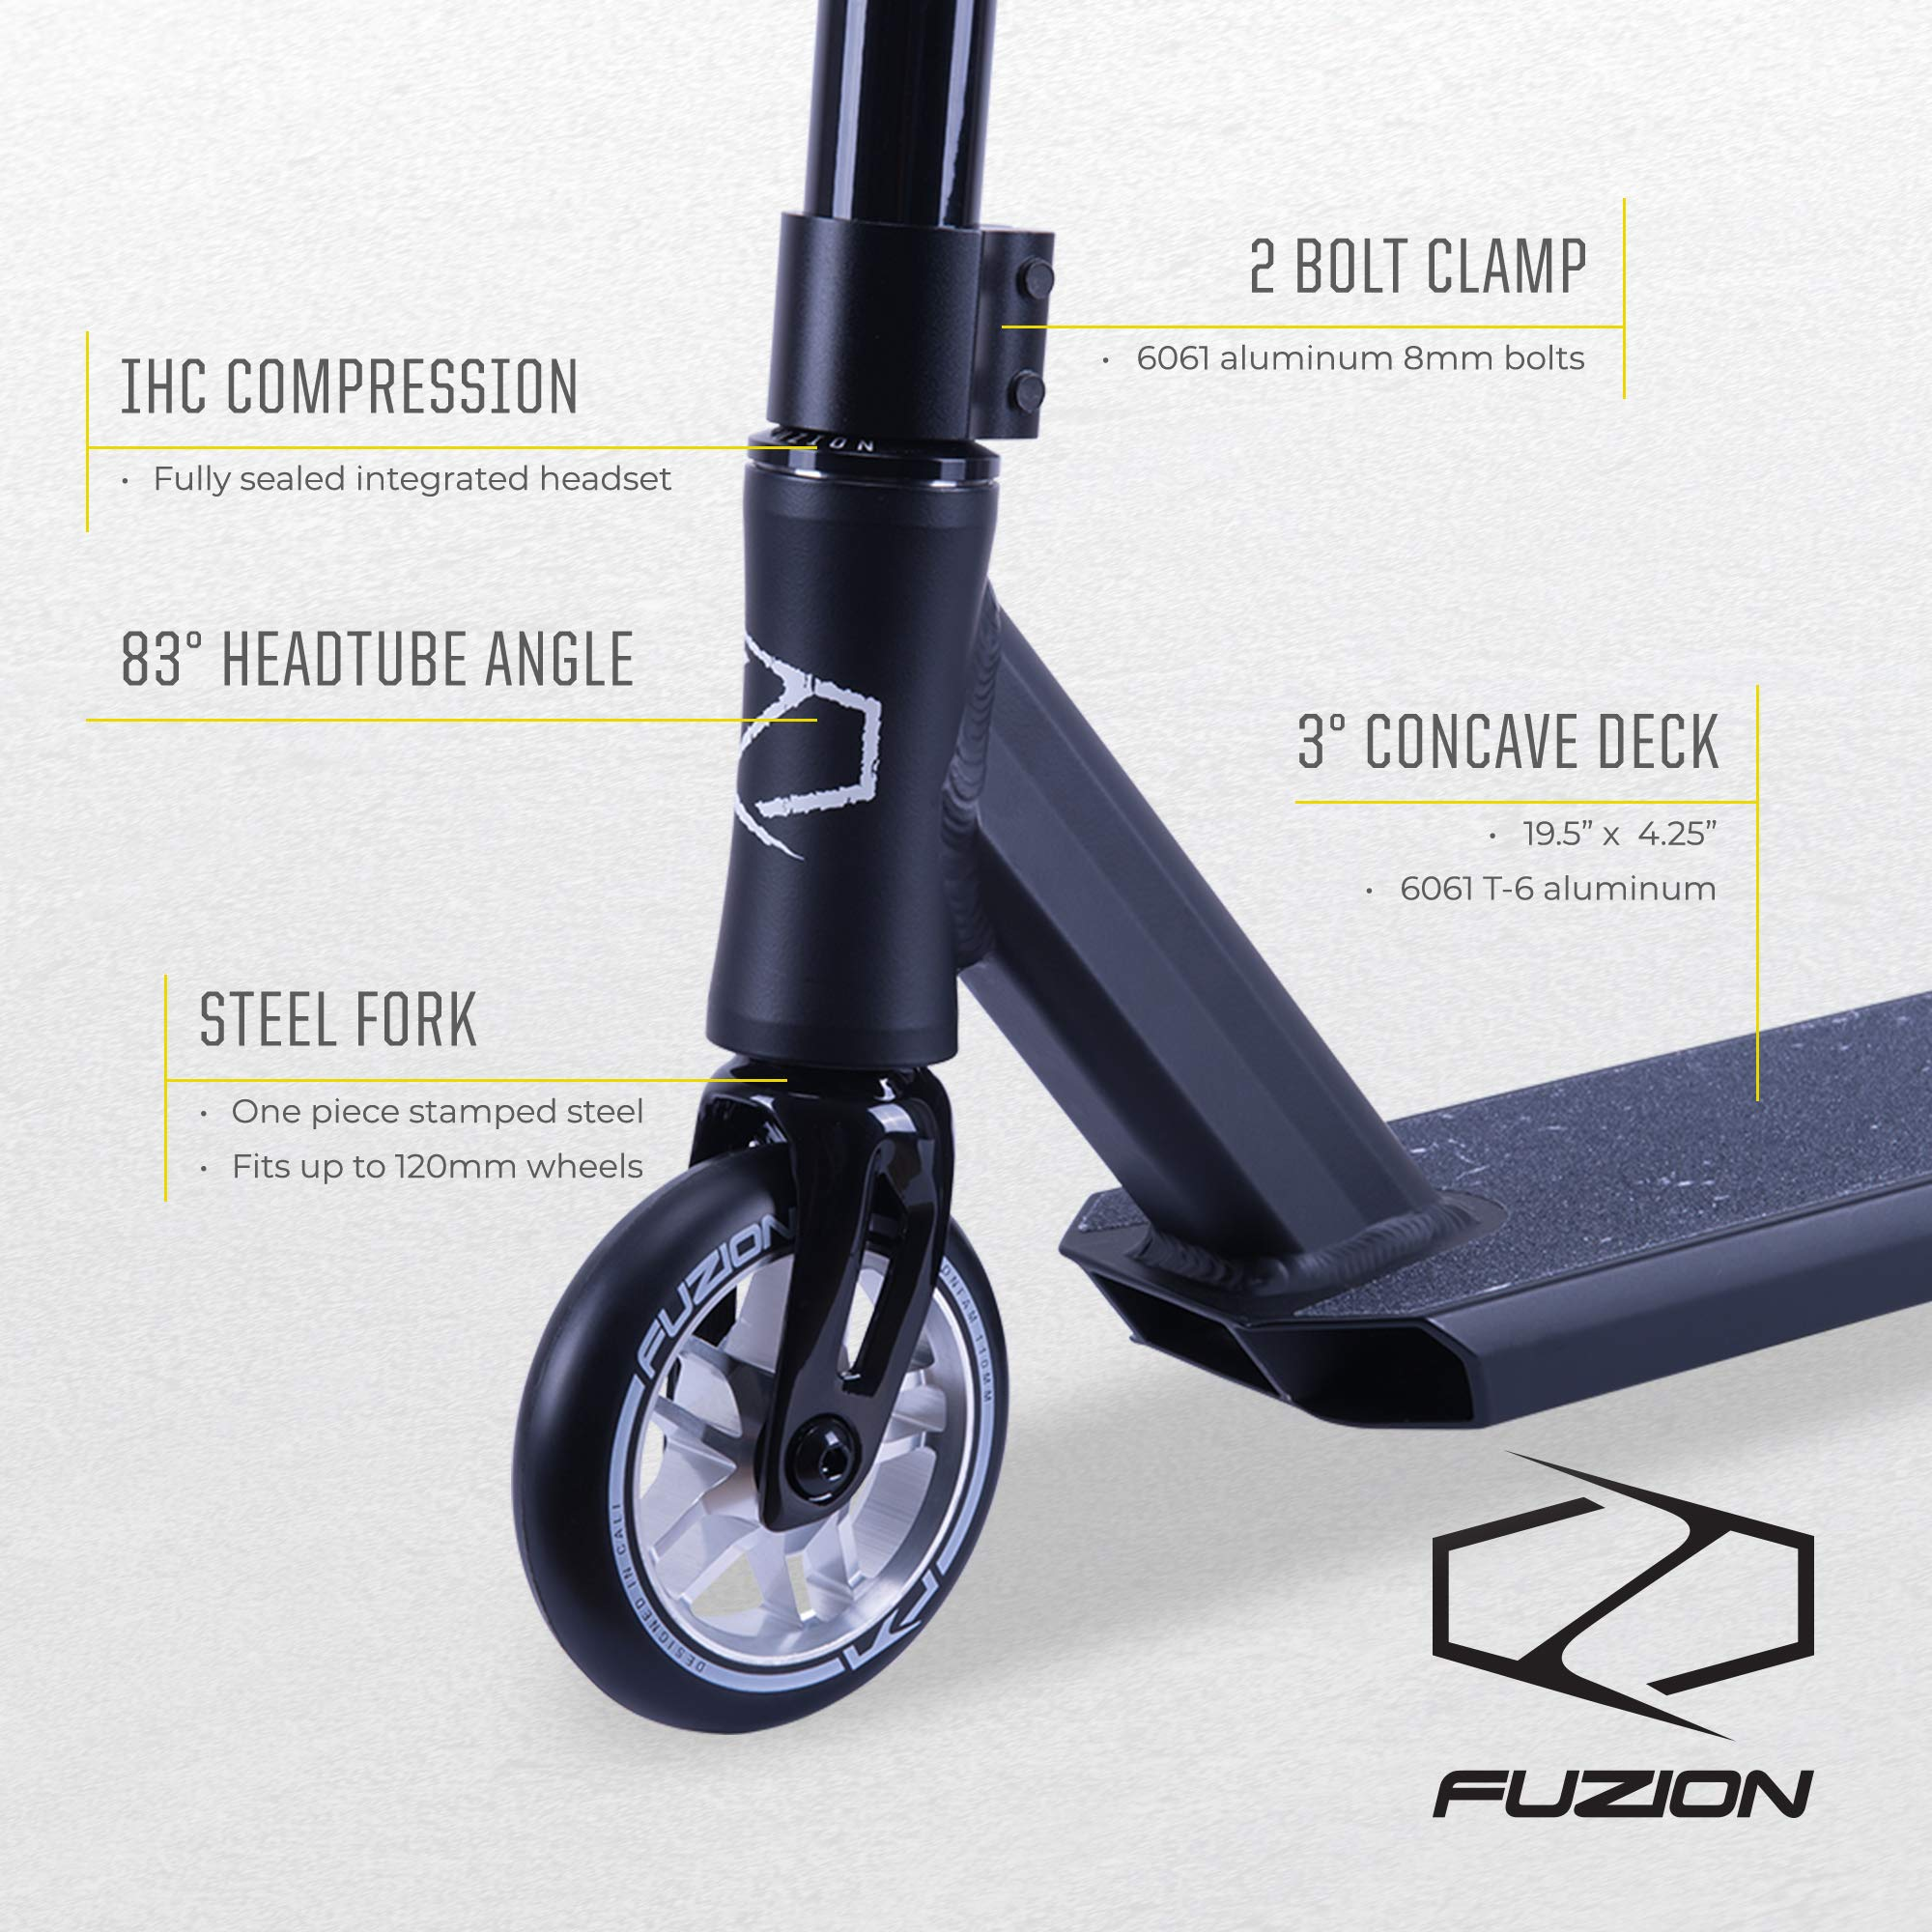 Fuzion Z250 Pro Scooters - Trick Scooter - Intermediate and Beginner Stunt Scooters for Kids 8 Years and Up, Teens and Adults – Durable Freestyle Kick Scooter for Boys and Girls (2019 Pitch Black) by Fuzion (Image #2)